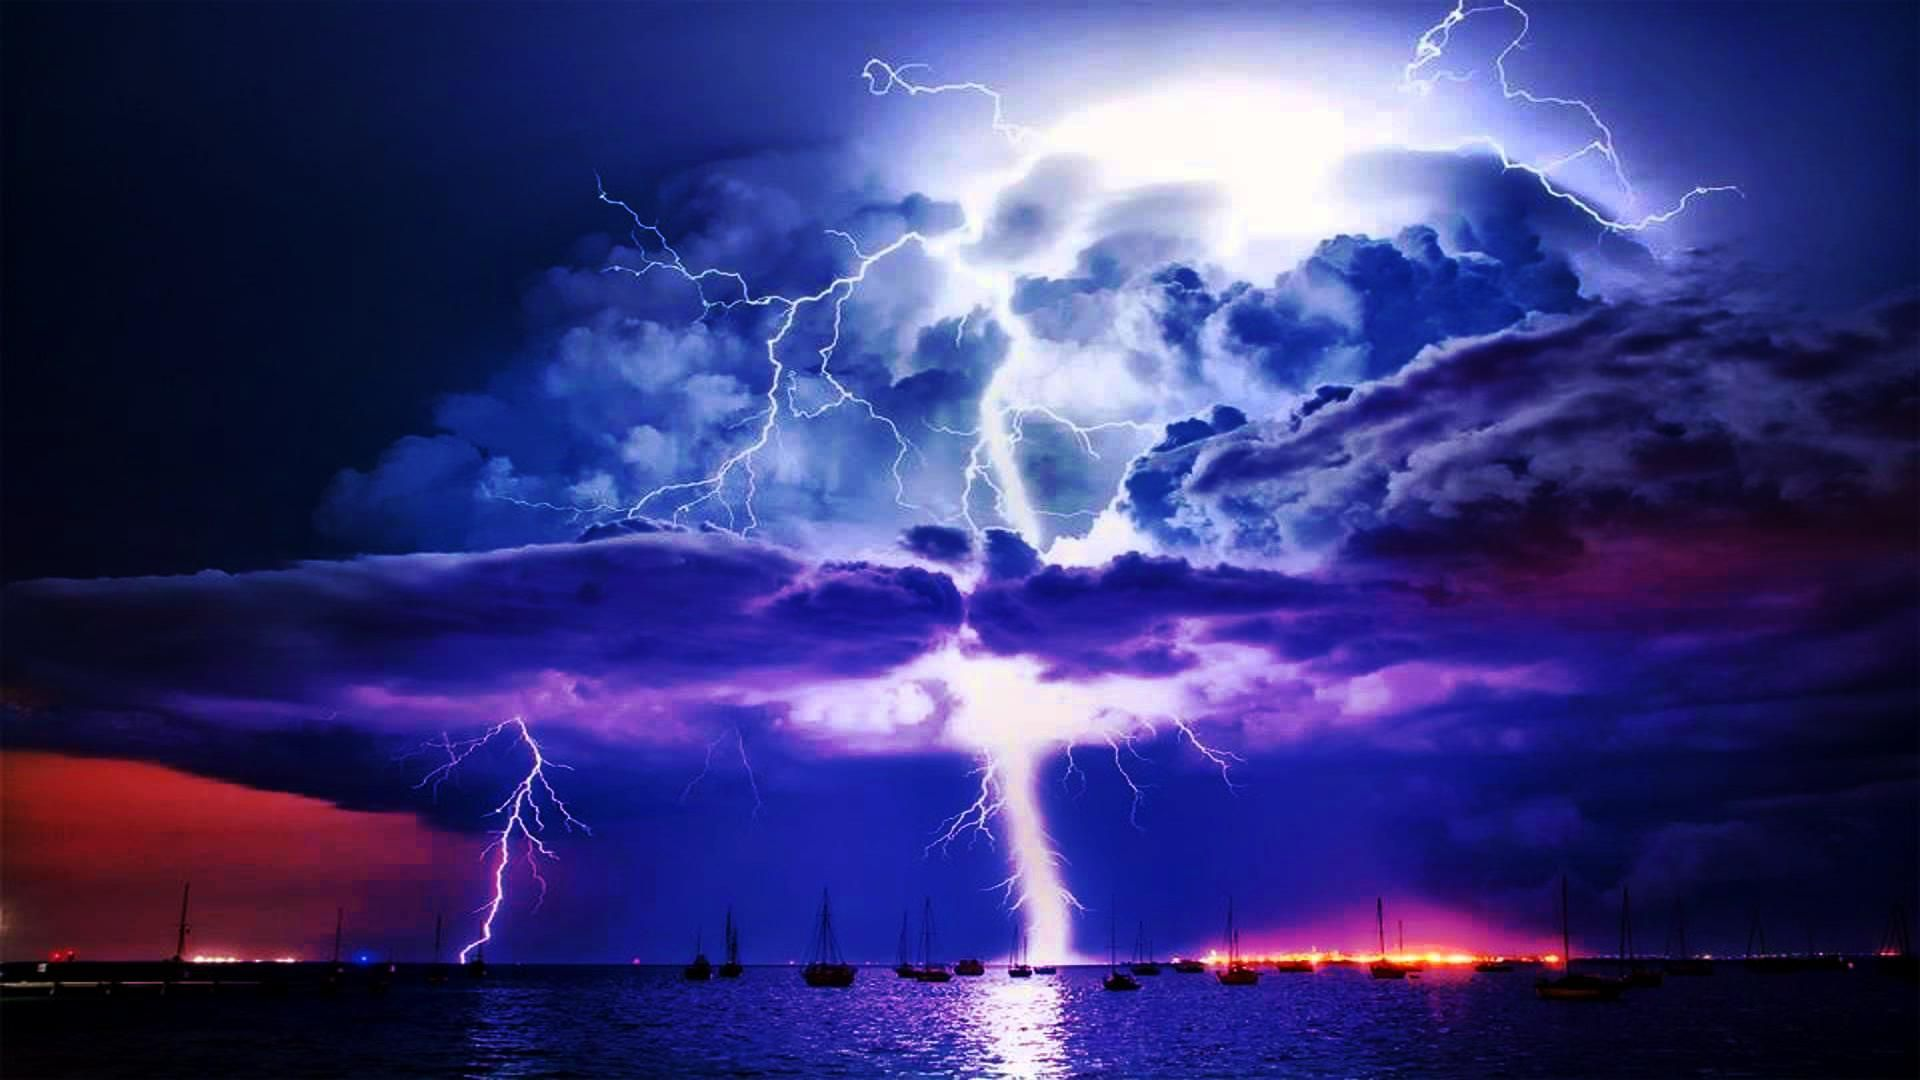 Hd Wallpapers Of Storms